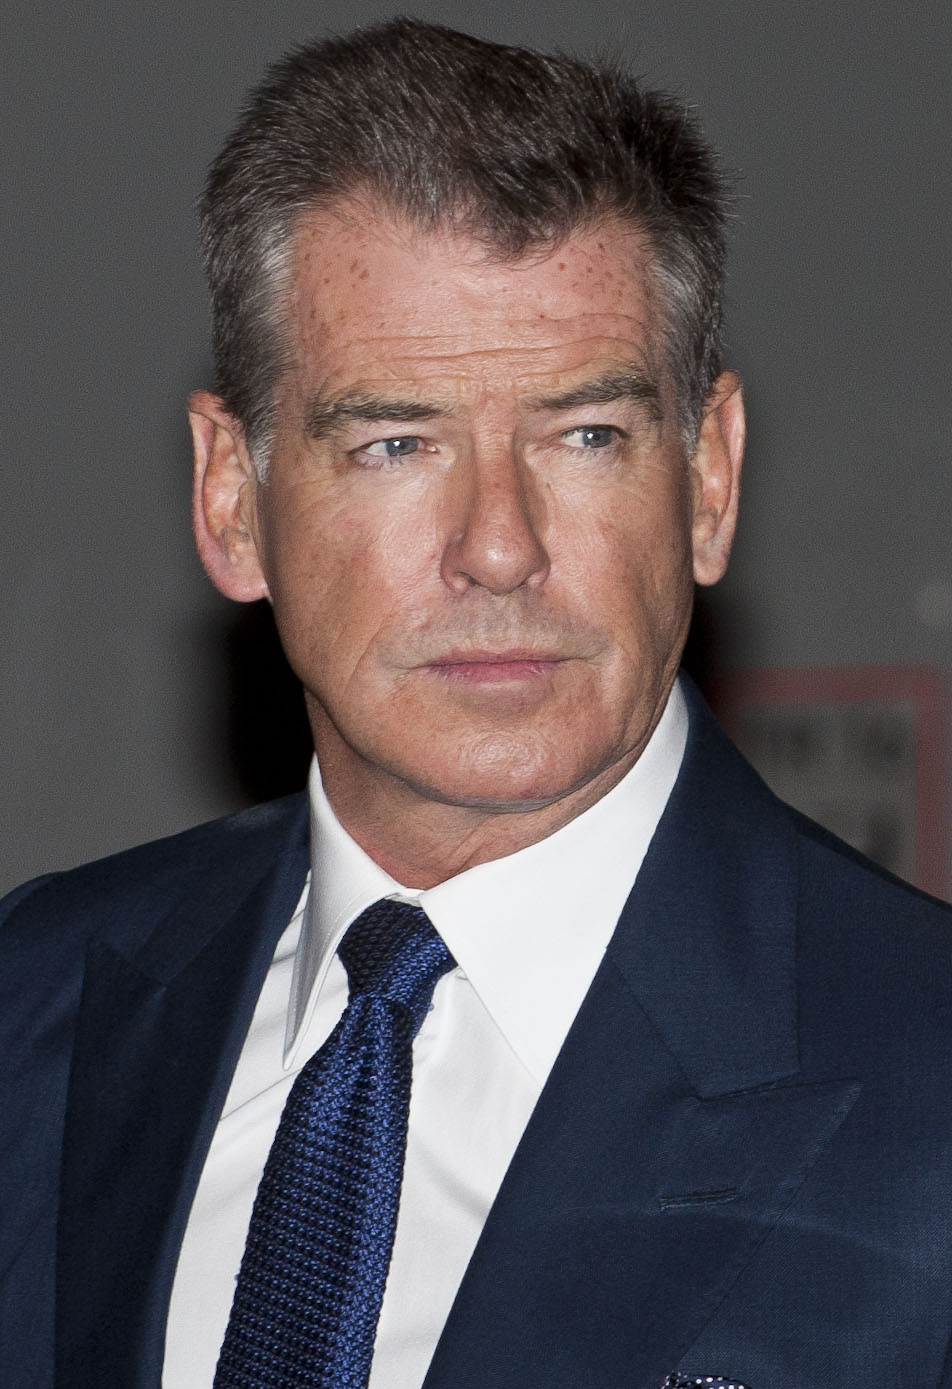 pierce brosnan imdbpierce brosnan wife, pierce brosnan films, pierce brosnan movies, pierce brosnan james bond, pierce brosnan 2016, pierce brosnan height, pierce brosnan son, pierce brosnan salma hayek, pierce brosnan filmi, pierce brosnan and keely shaye smith, pierce brosnan 2017, pierce brosnan filmleri, pierce brosnan imdb, pierce brosnan movies list, pierce brosnan wiki, pierce brosnan die another day, pierce brosnan фильмы, pierce brosnan james corden, pierce brosnan filme, pierce brosnan twitter